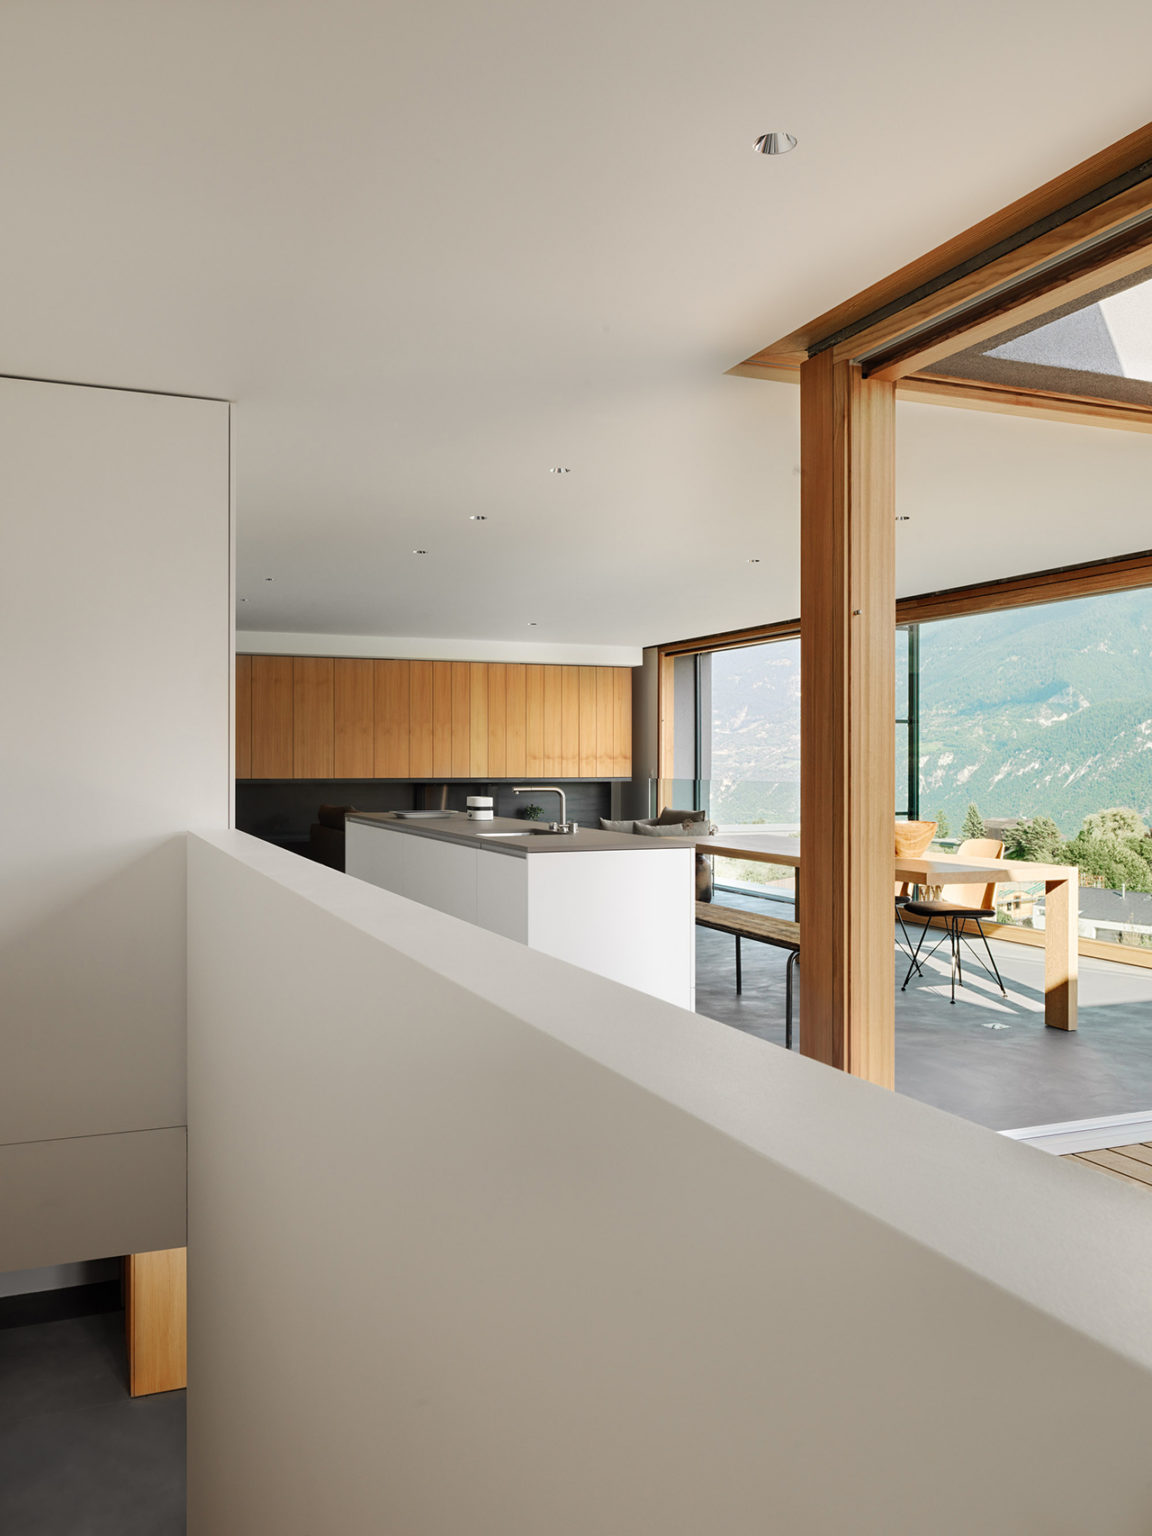 The interiors are done in minimalist style continuing the exterior aesthetics and the decor is very simple and laconic